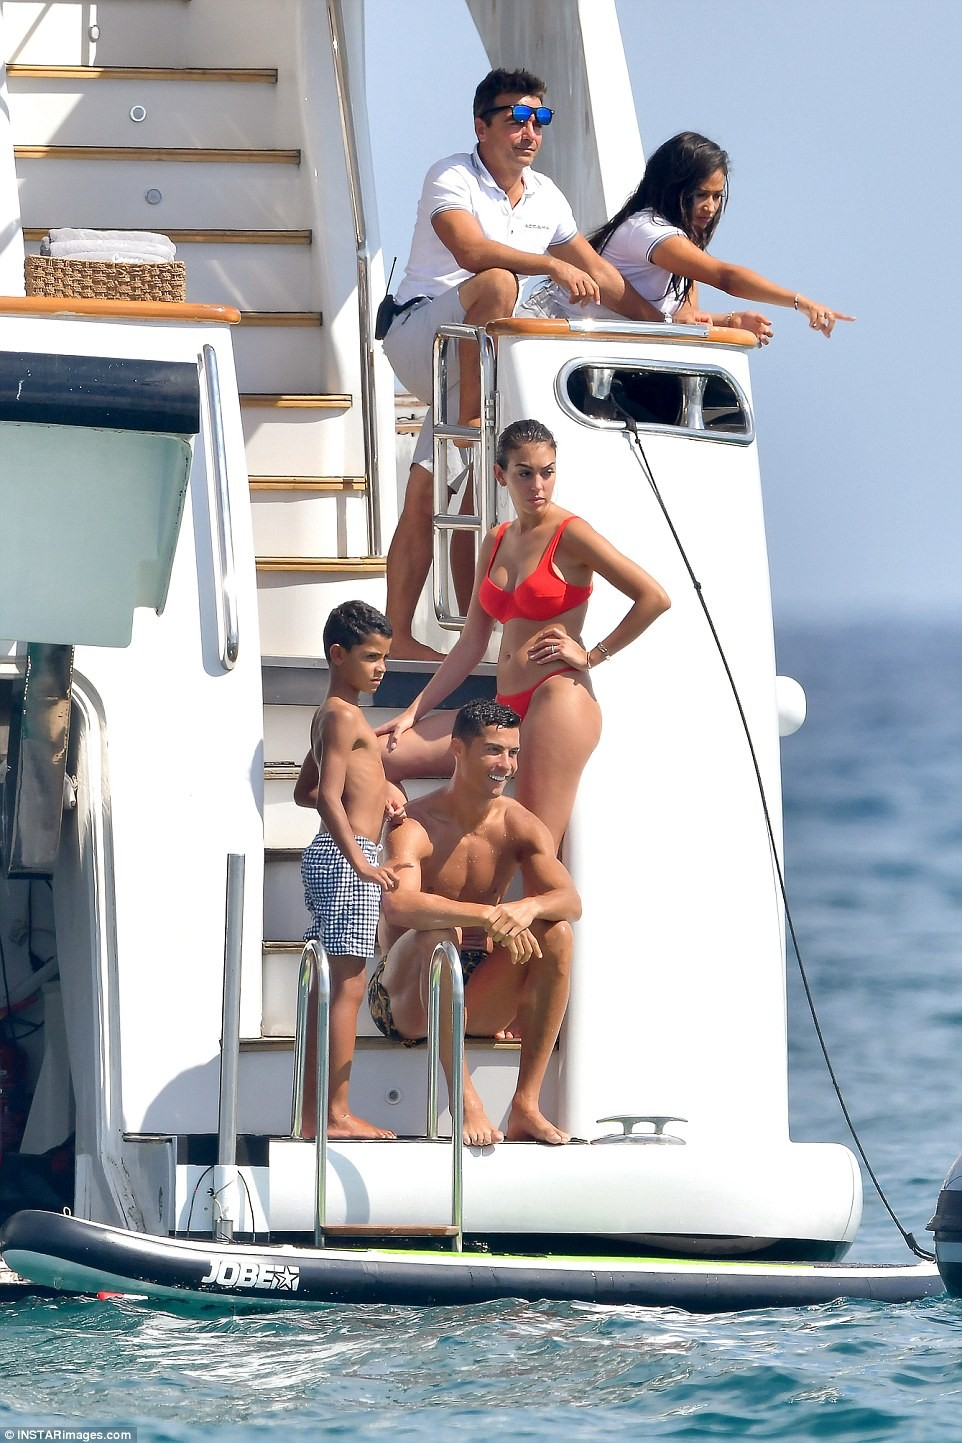 Ronaldo soaks up in Saint Tropez with his bikini-clad partner Georgina Rodriguez and son Cristiano Jr (Photos)